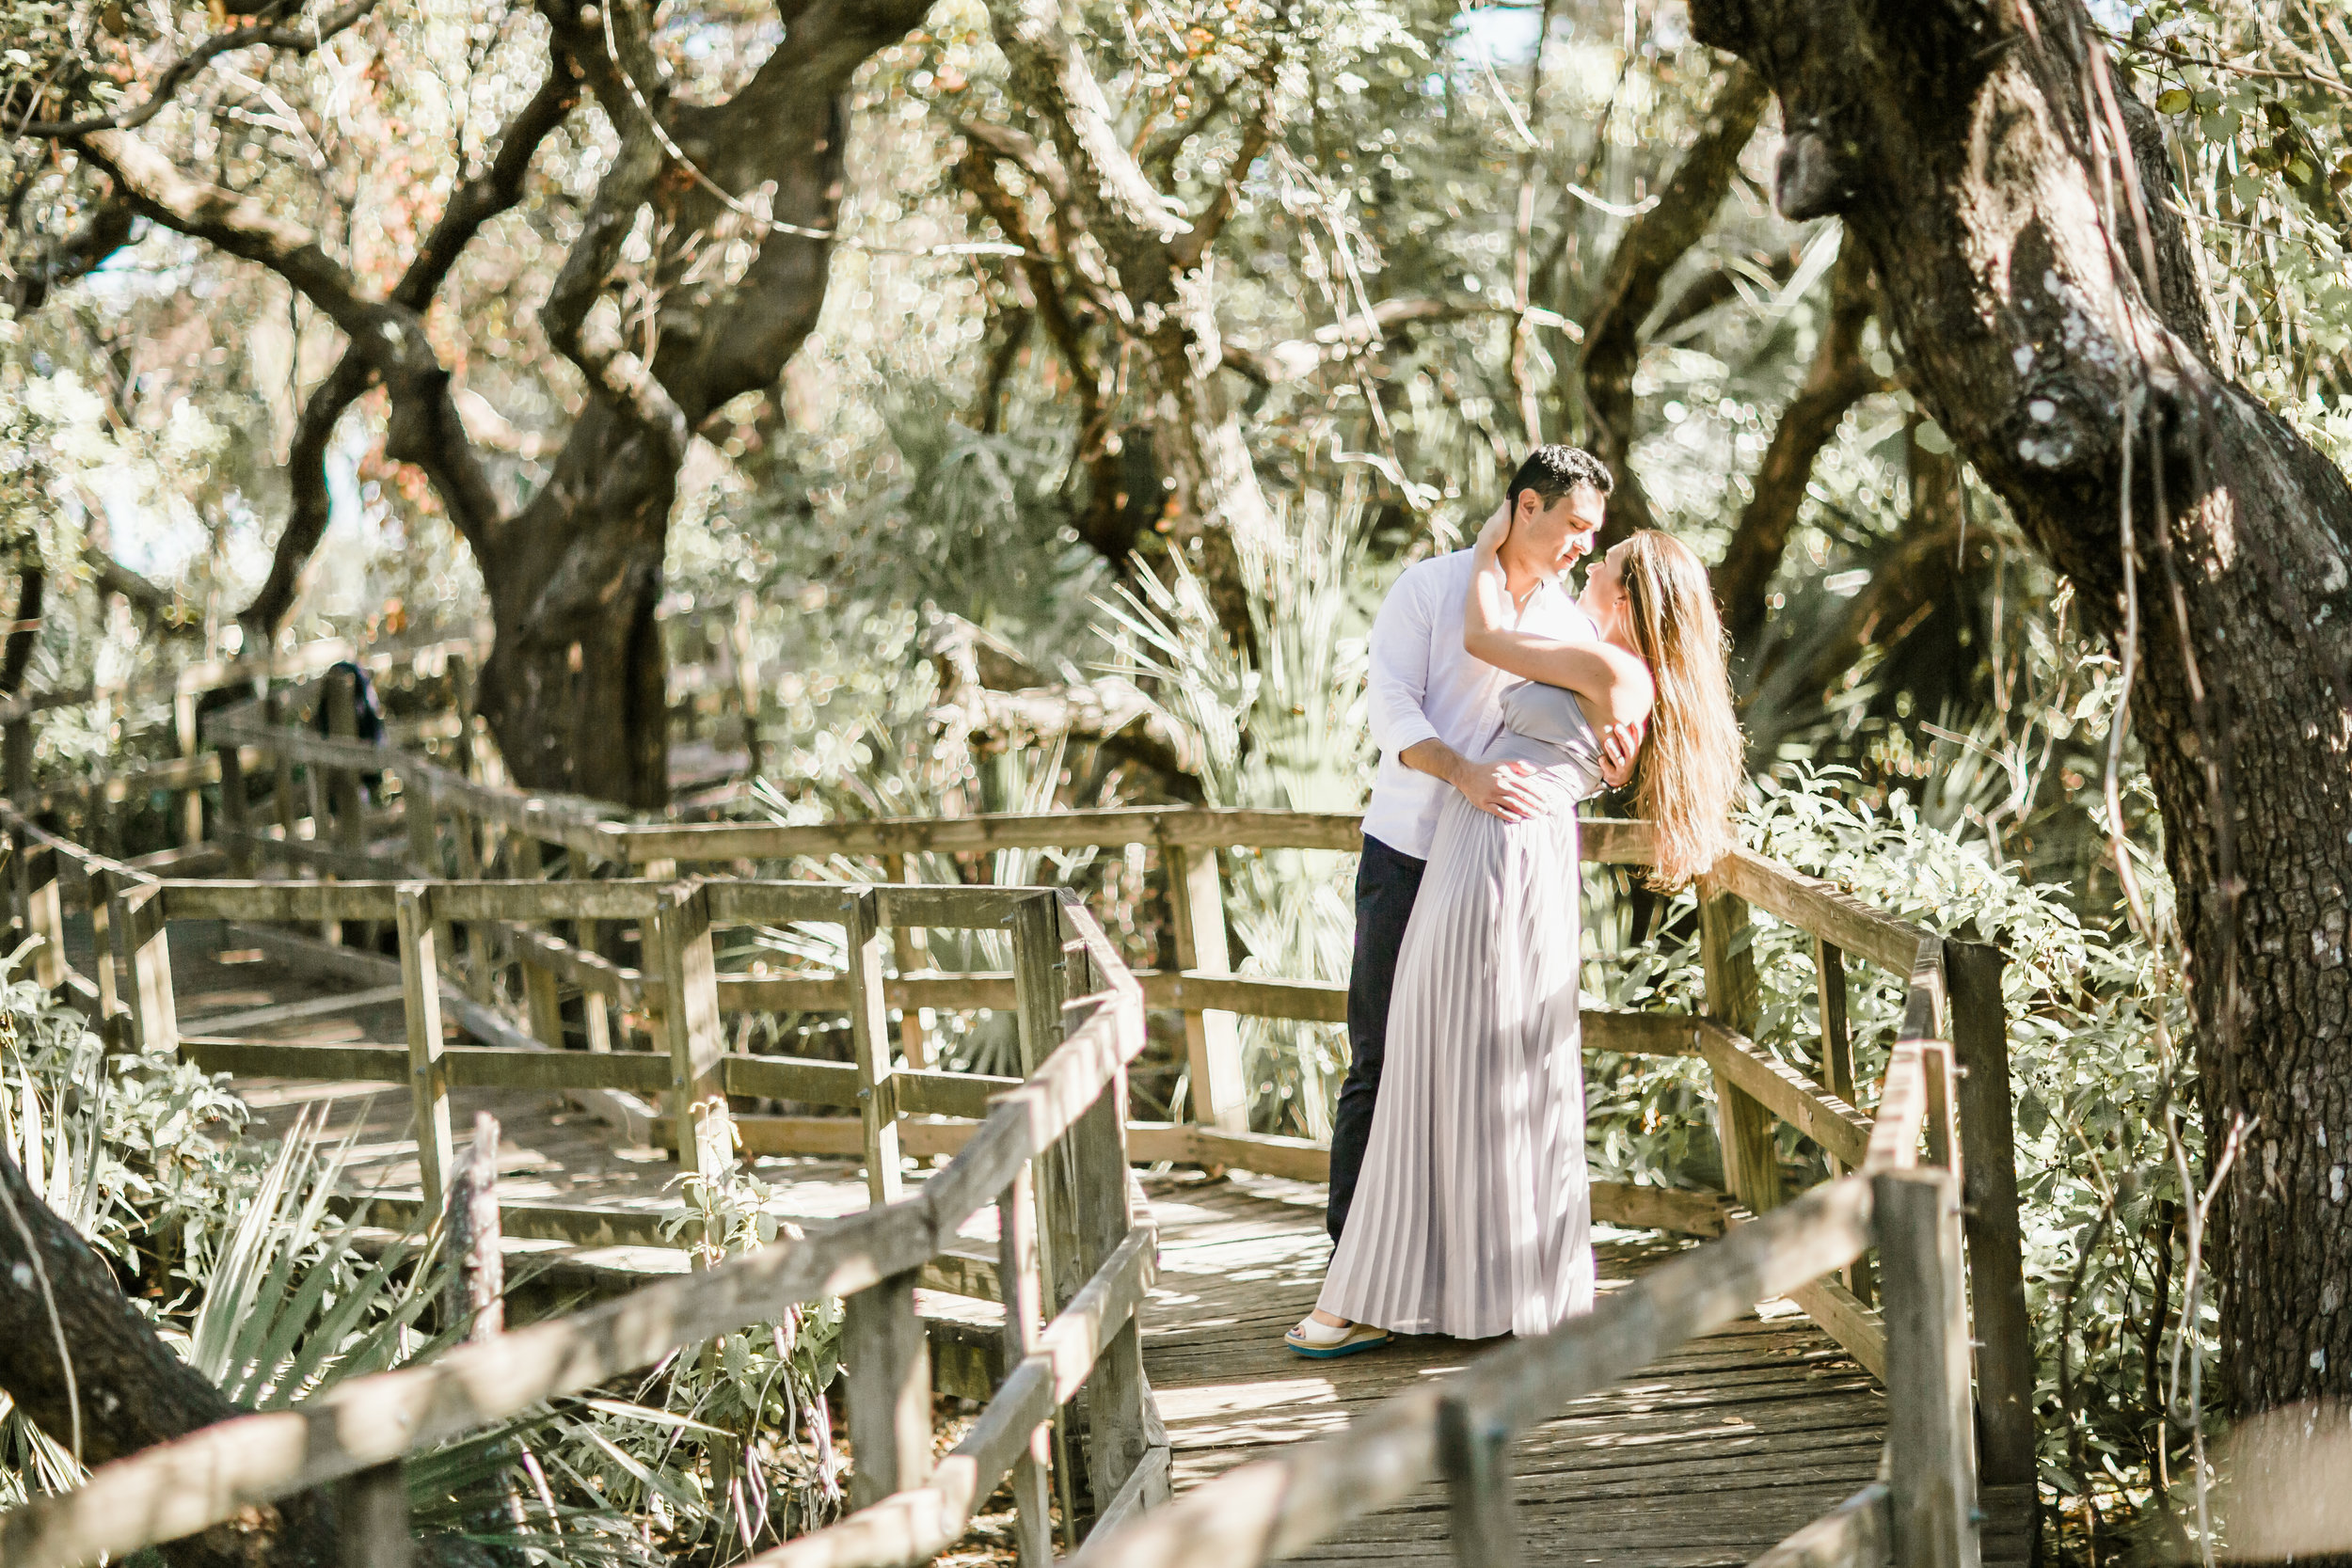 Elya + Andres - Cocoa Beach Engagement - boho bride organic eucalpytus crown mermaid forest14.jpg